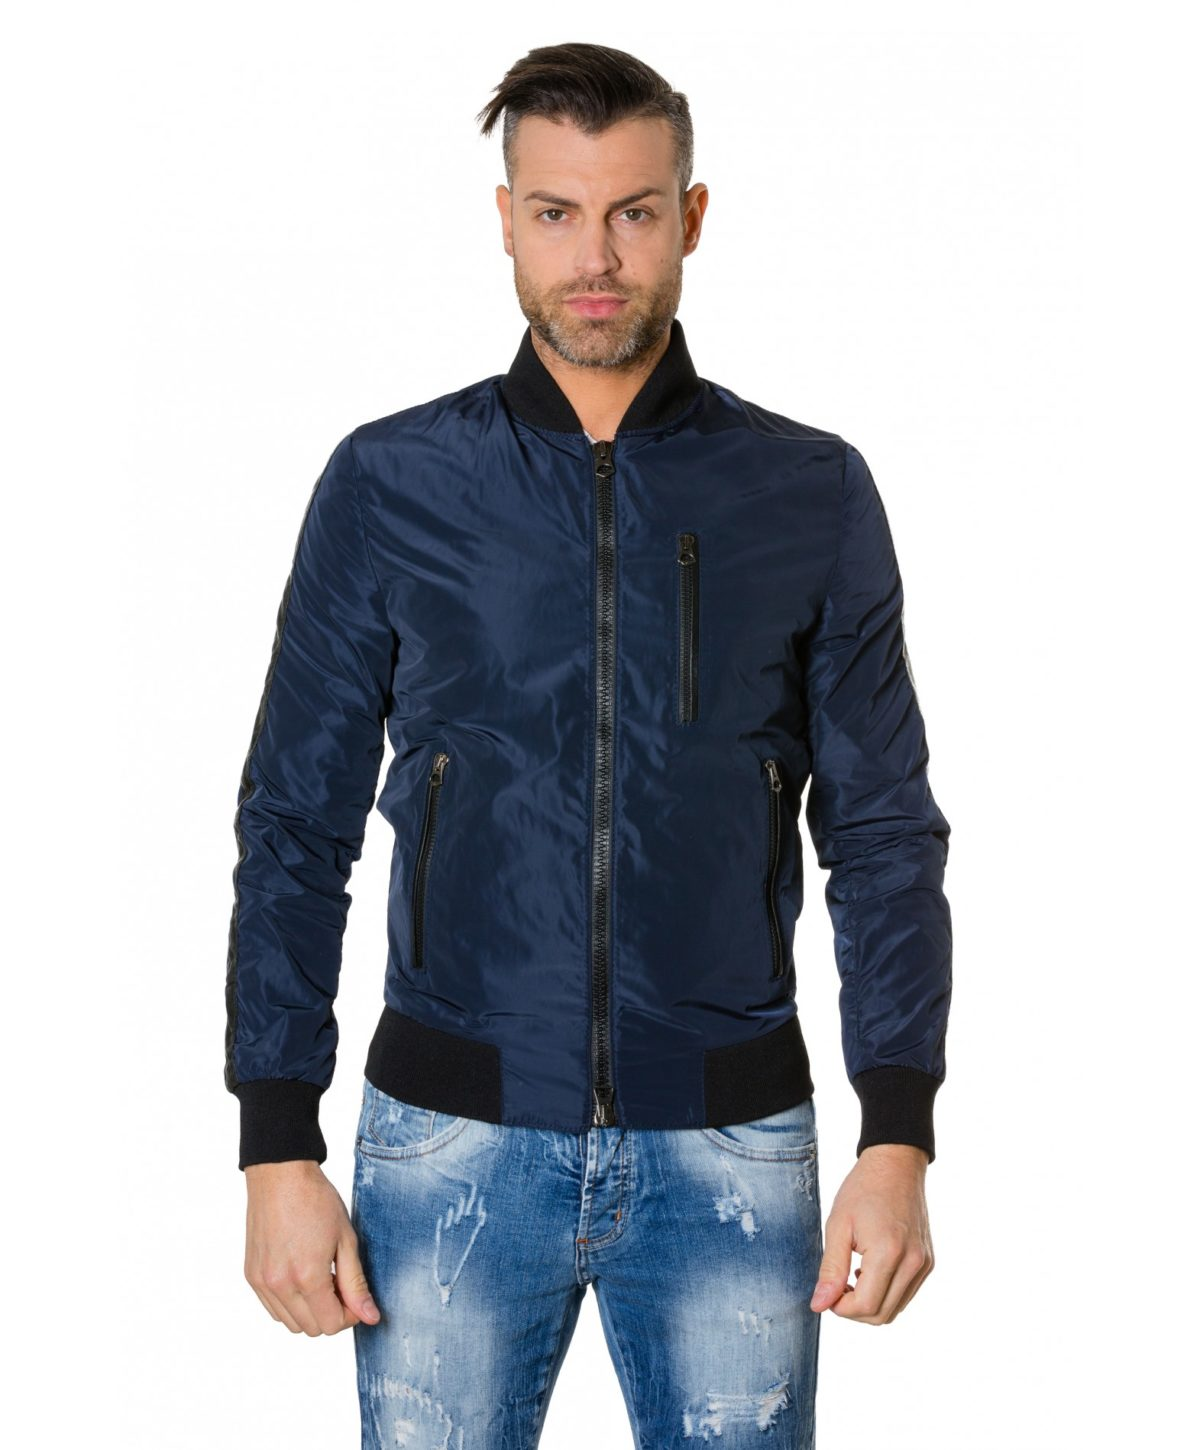 gaudil-blue-navy-colour-fabric-bomber-jacket-with-leather-inserts